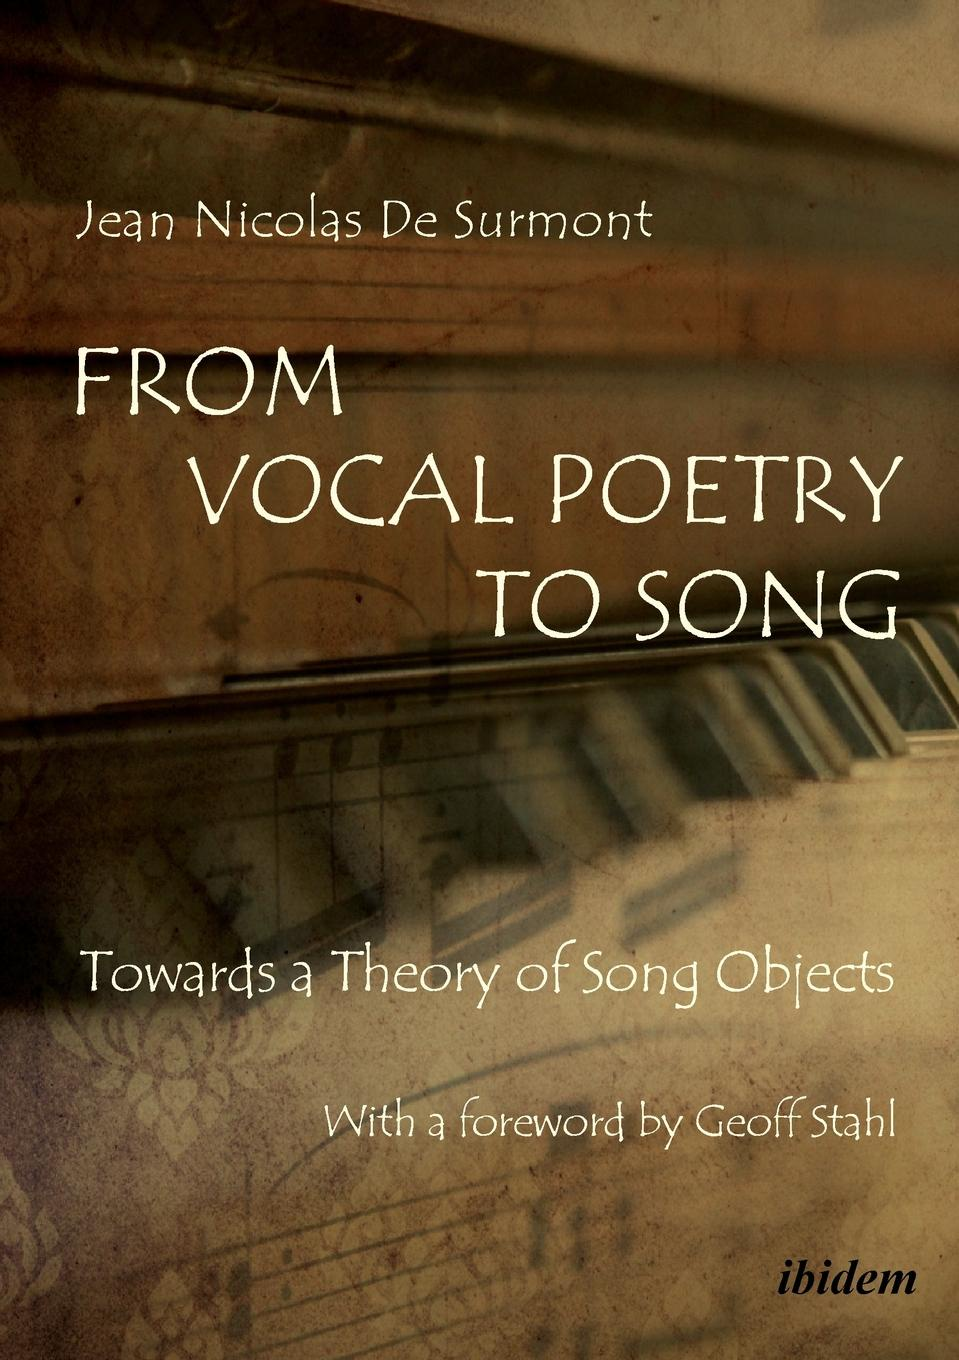 Jean Nicolas De Surmont From Vocal Poetry to Song. Towards a Theory of Song Objects secret song